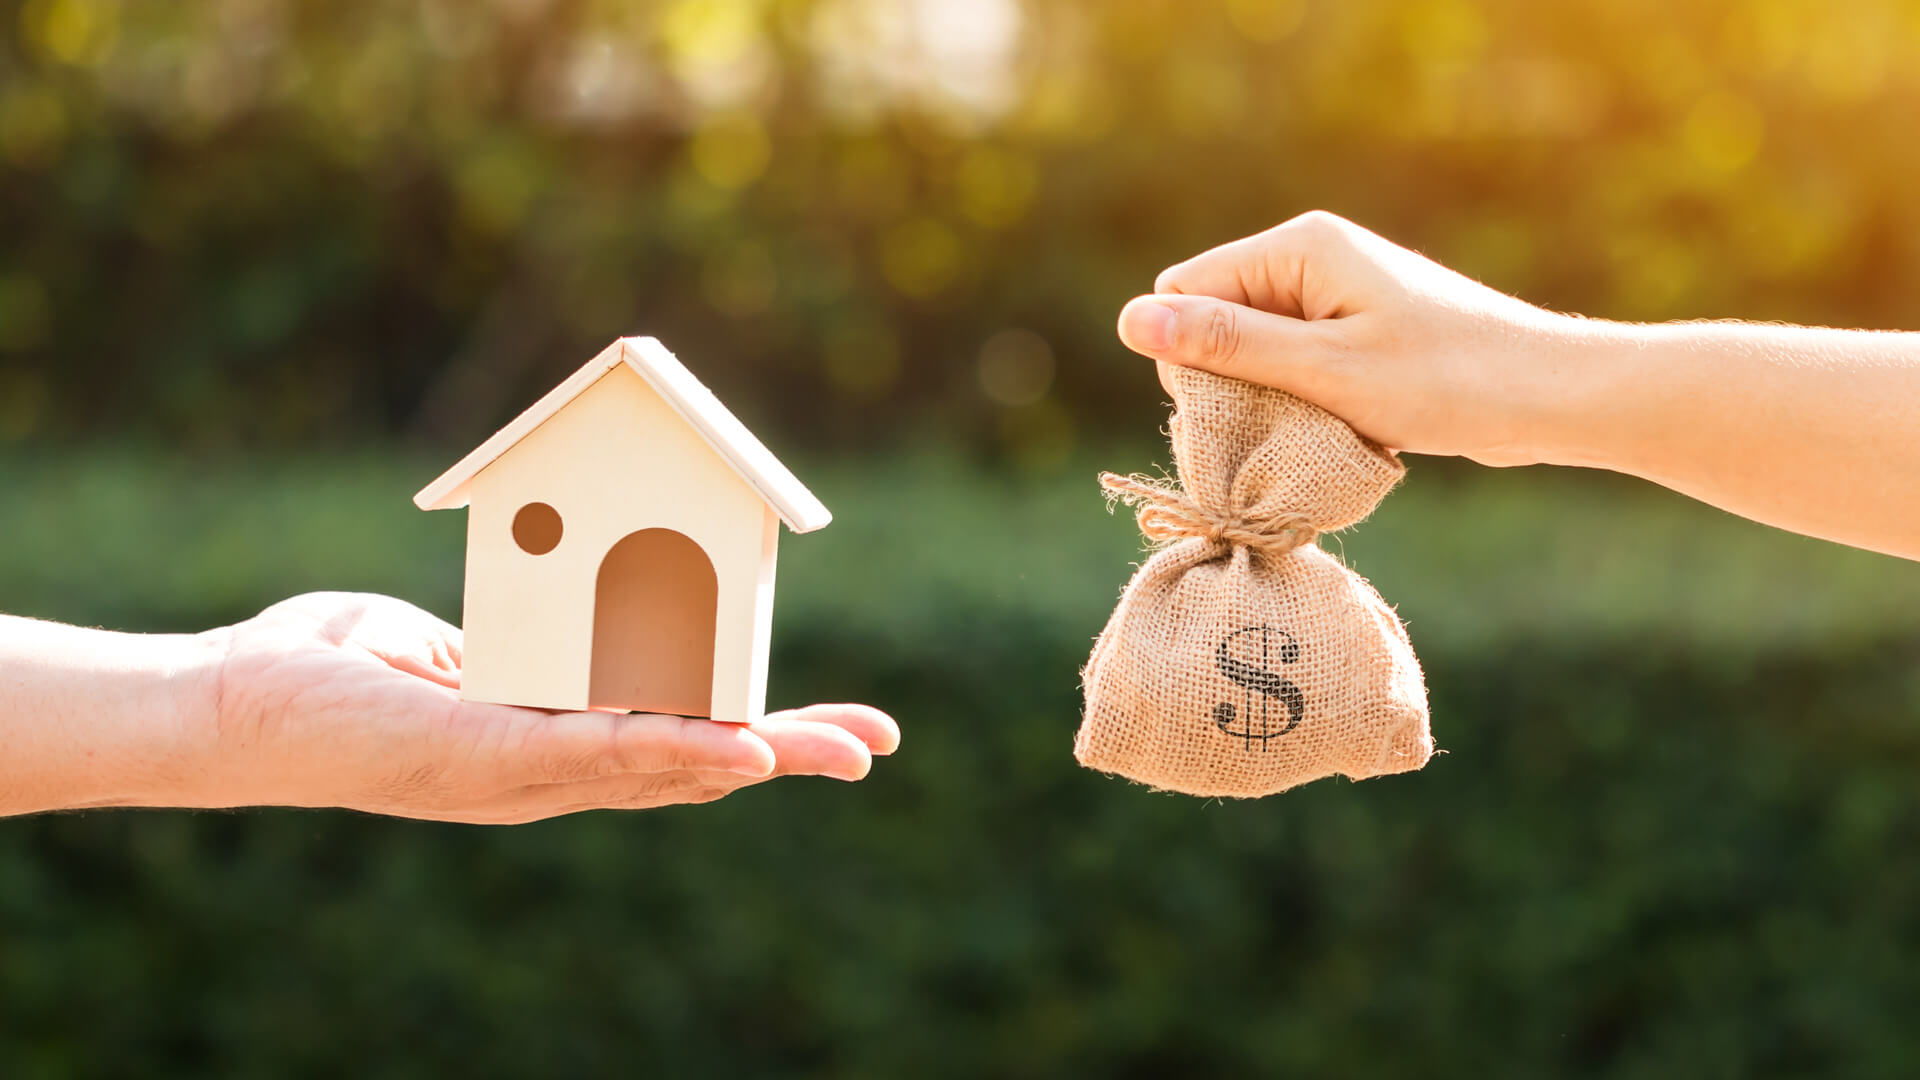 Wooden-home-and-a-bag-of-money-shutterstock_518887963